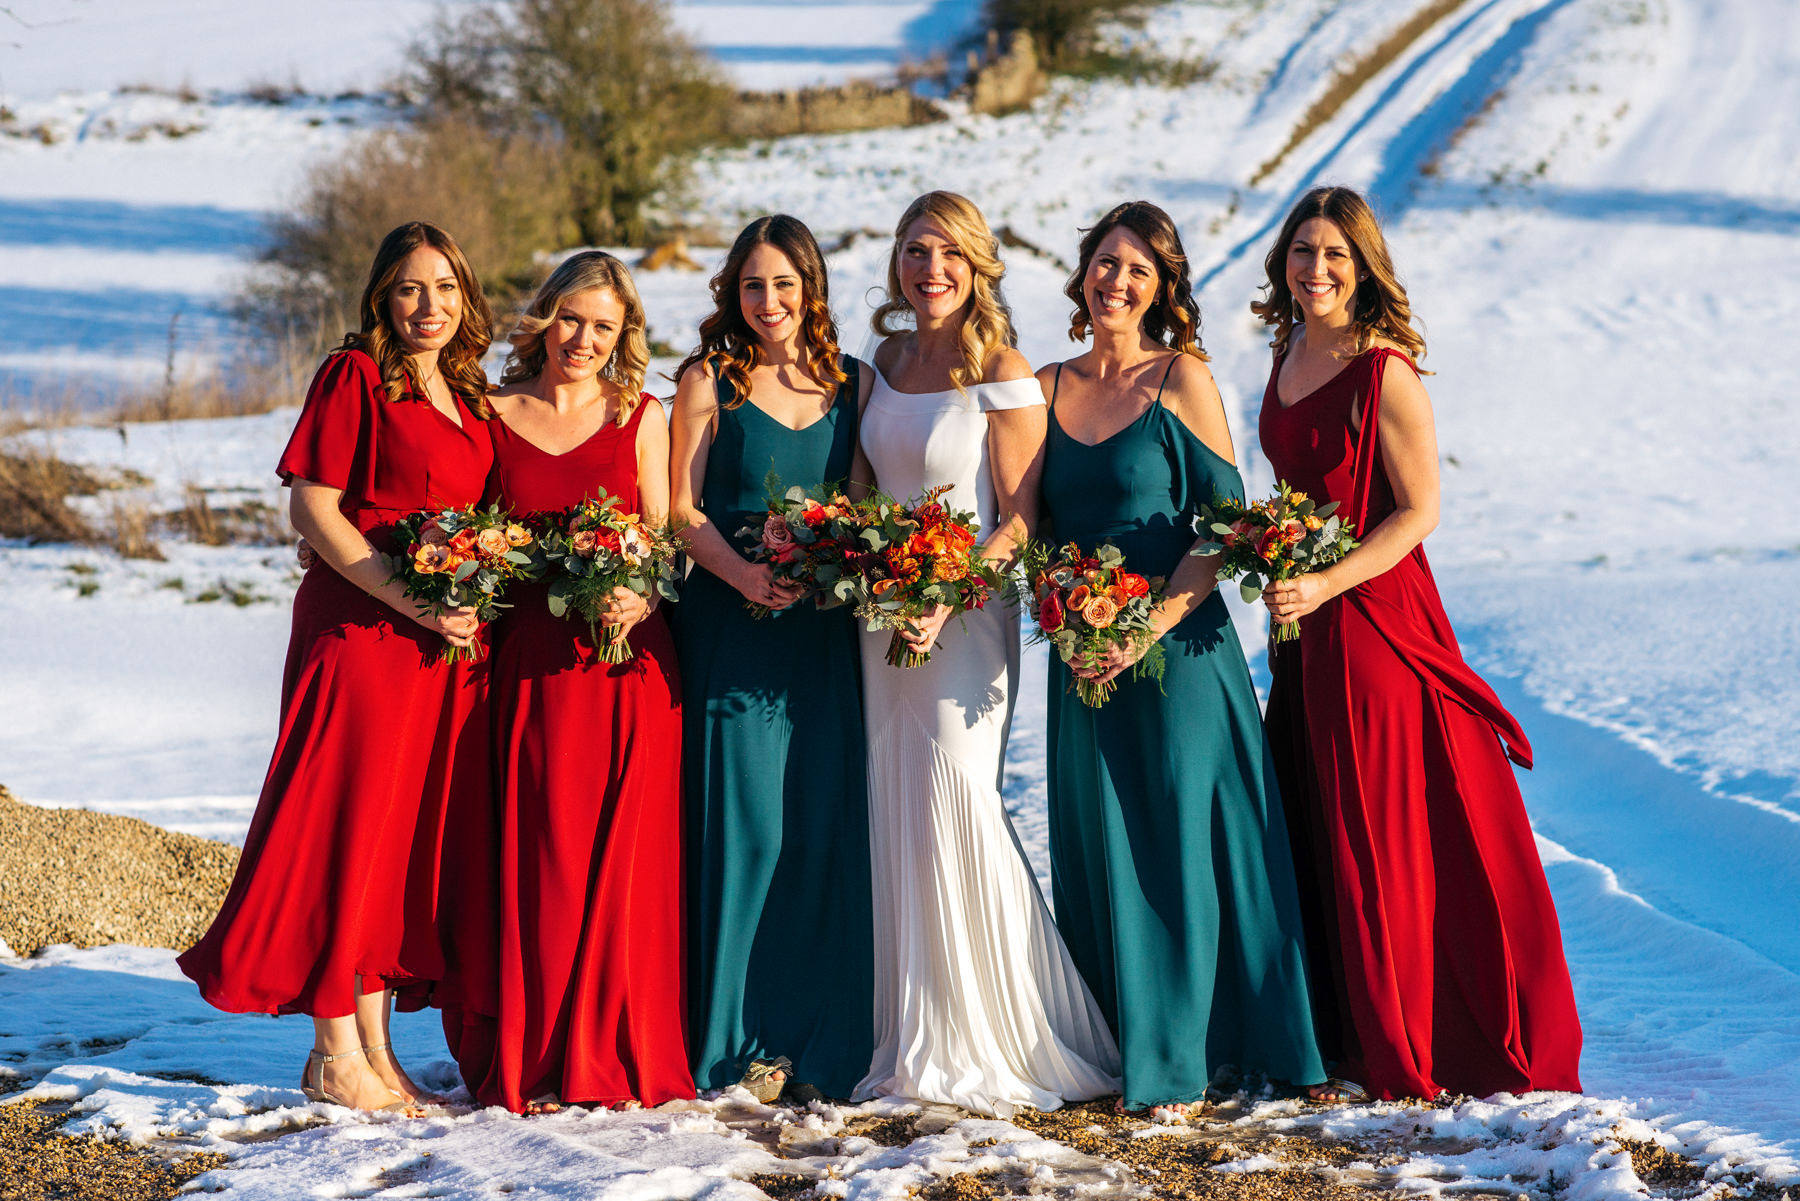 formal wedding photos in snow